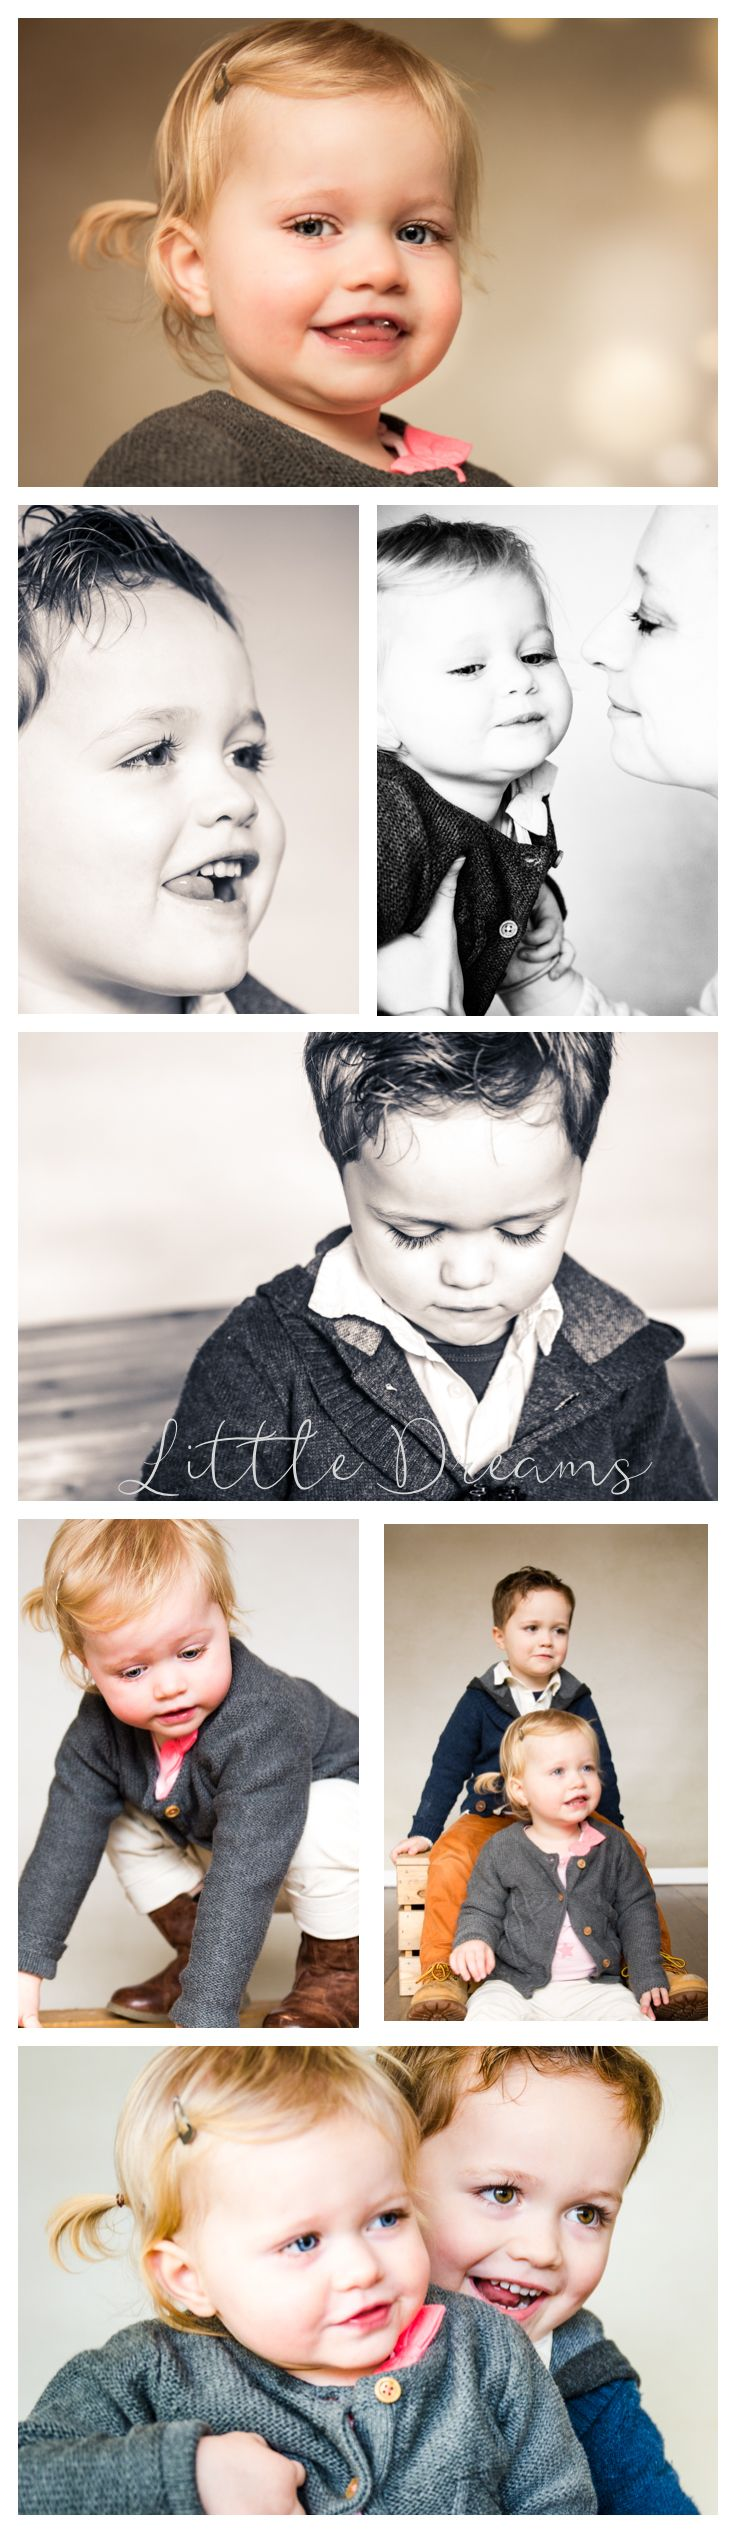 #Broer en zus #fotografie #studio #little dreams #ogen #clean edit